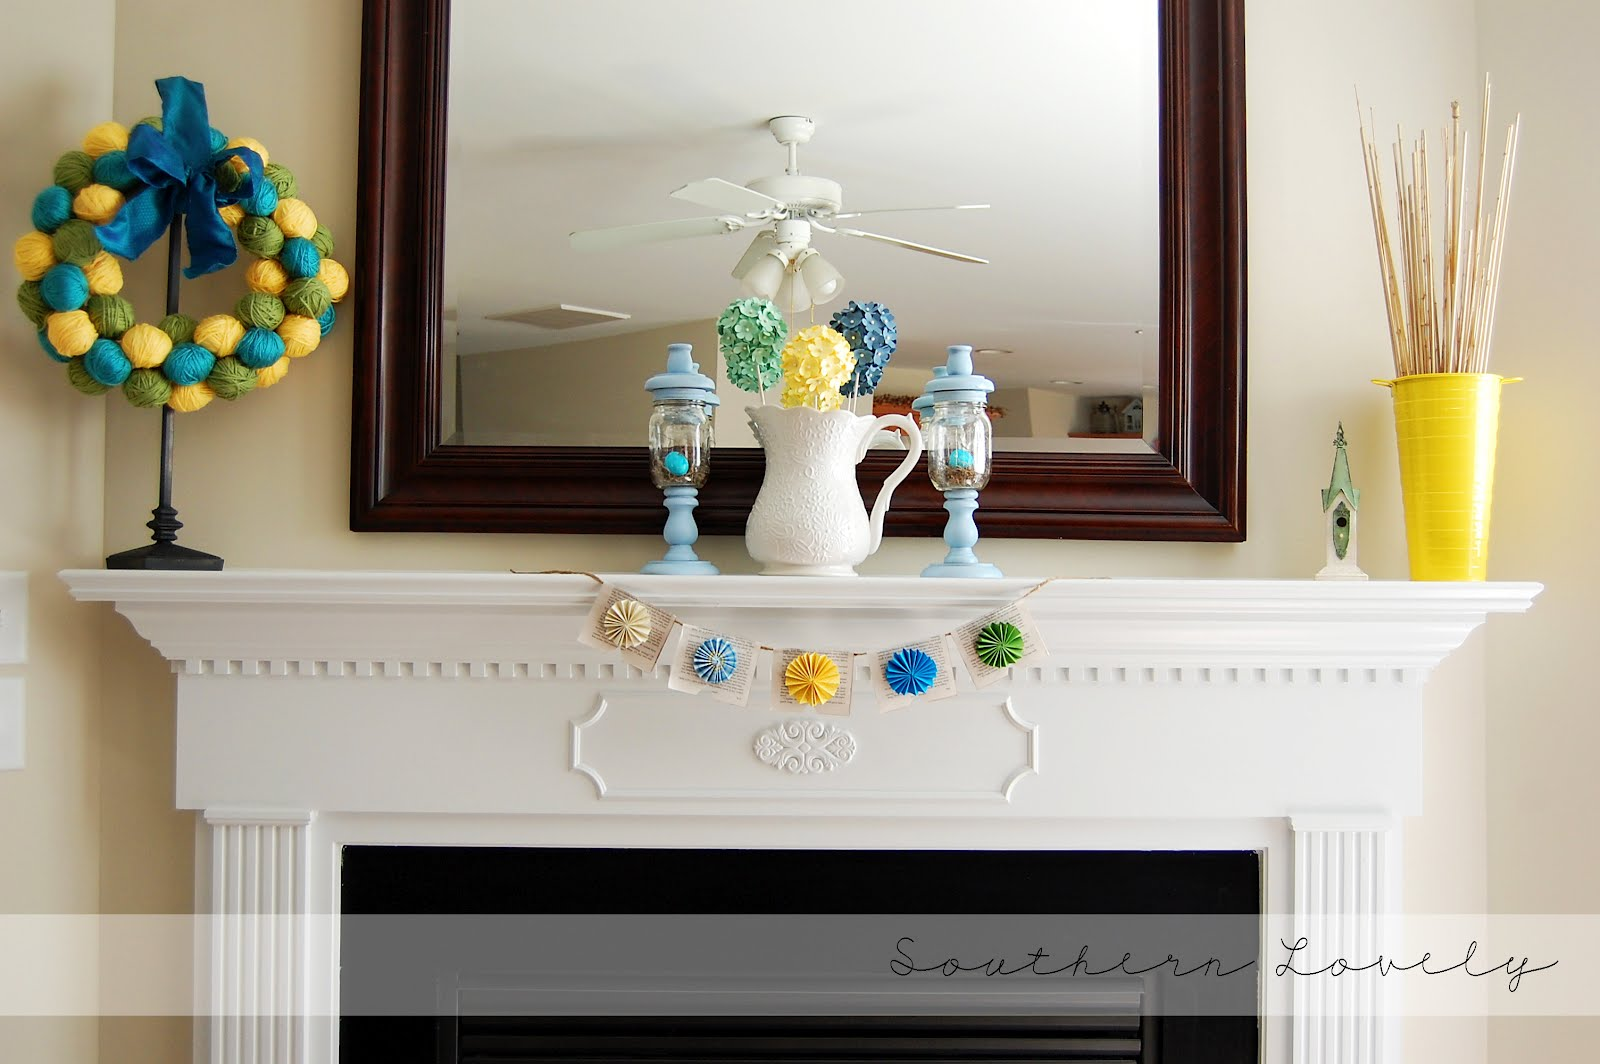 Spring Decorating Ideas for your Fireplace Mantel Shelf ...